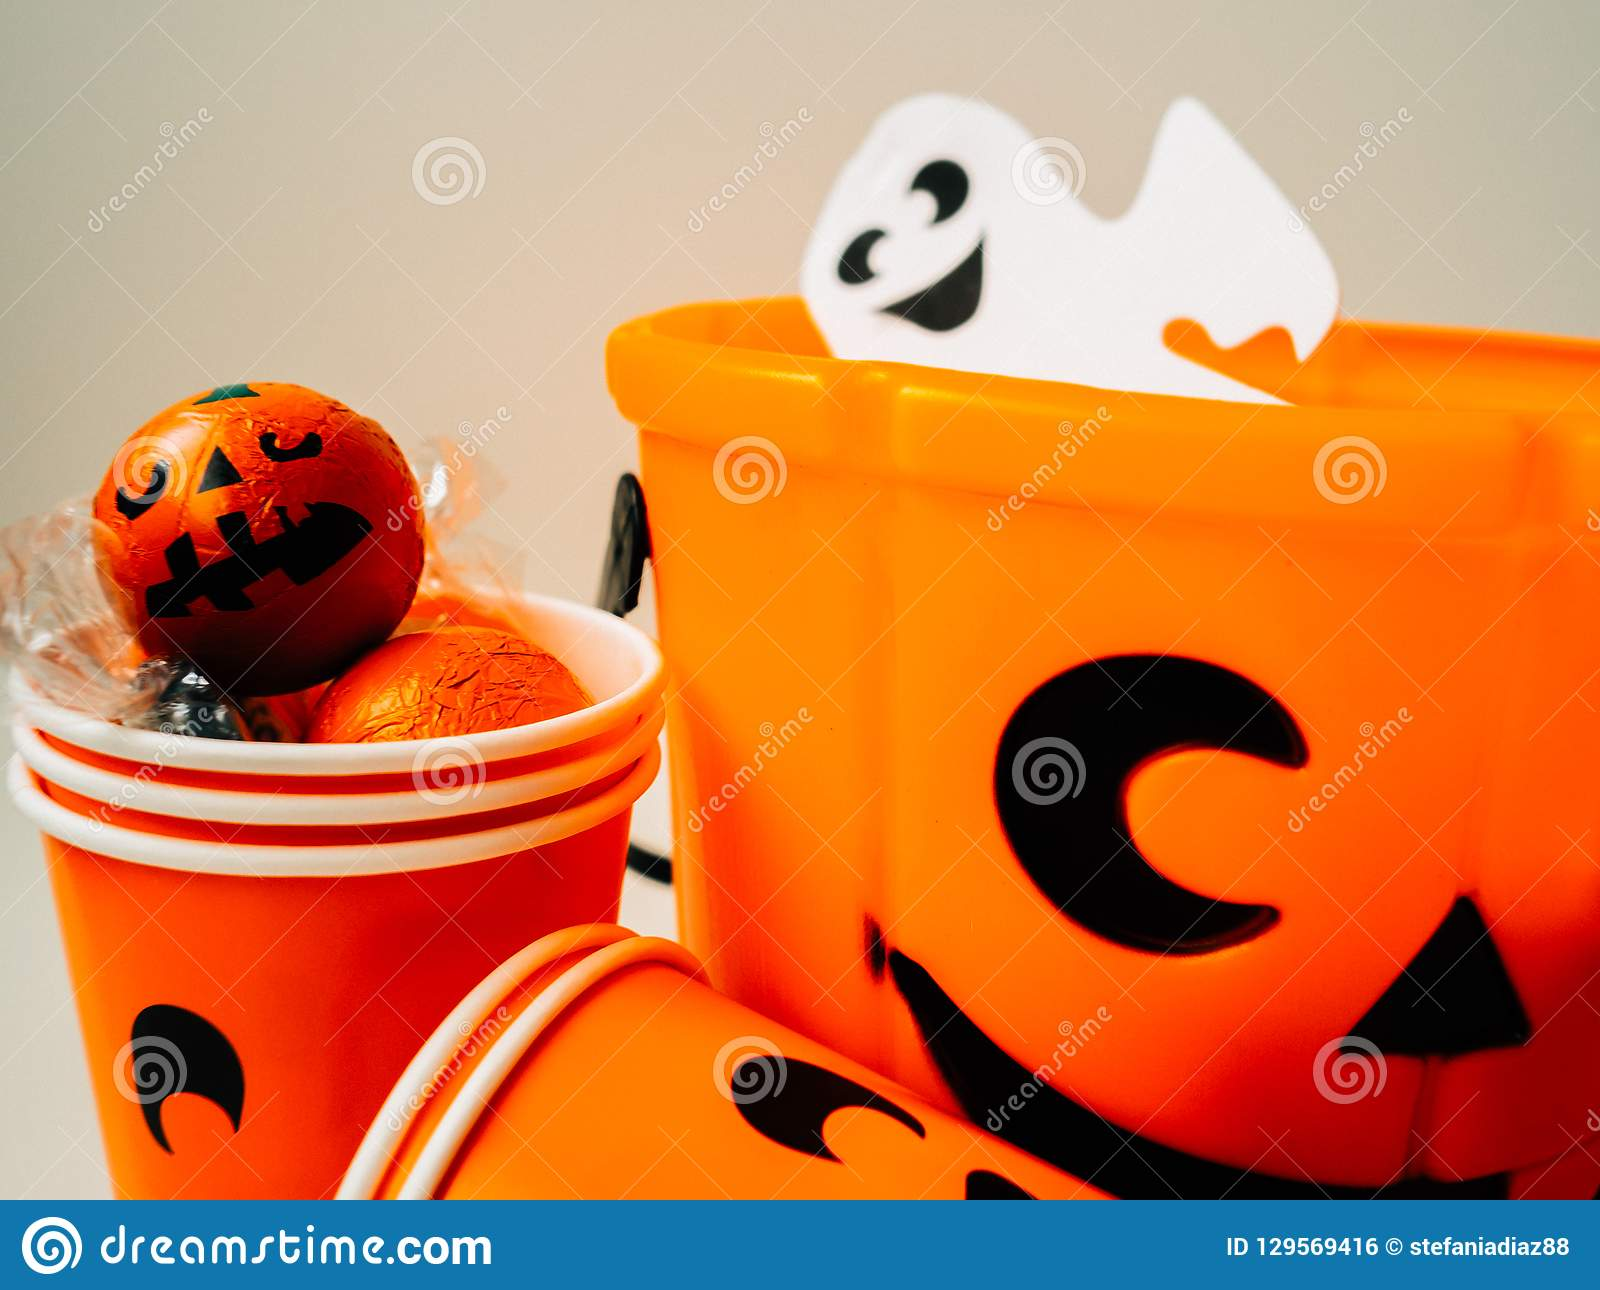 Orange pumpkin filled with chocolates and an orange cardboard cup with happy face and a white ghost